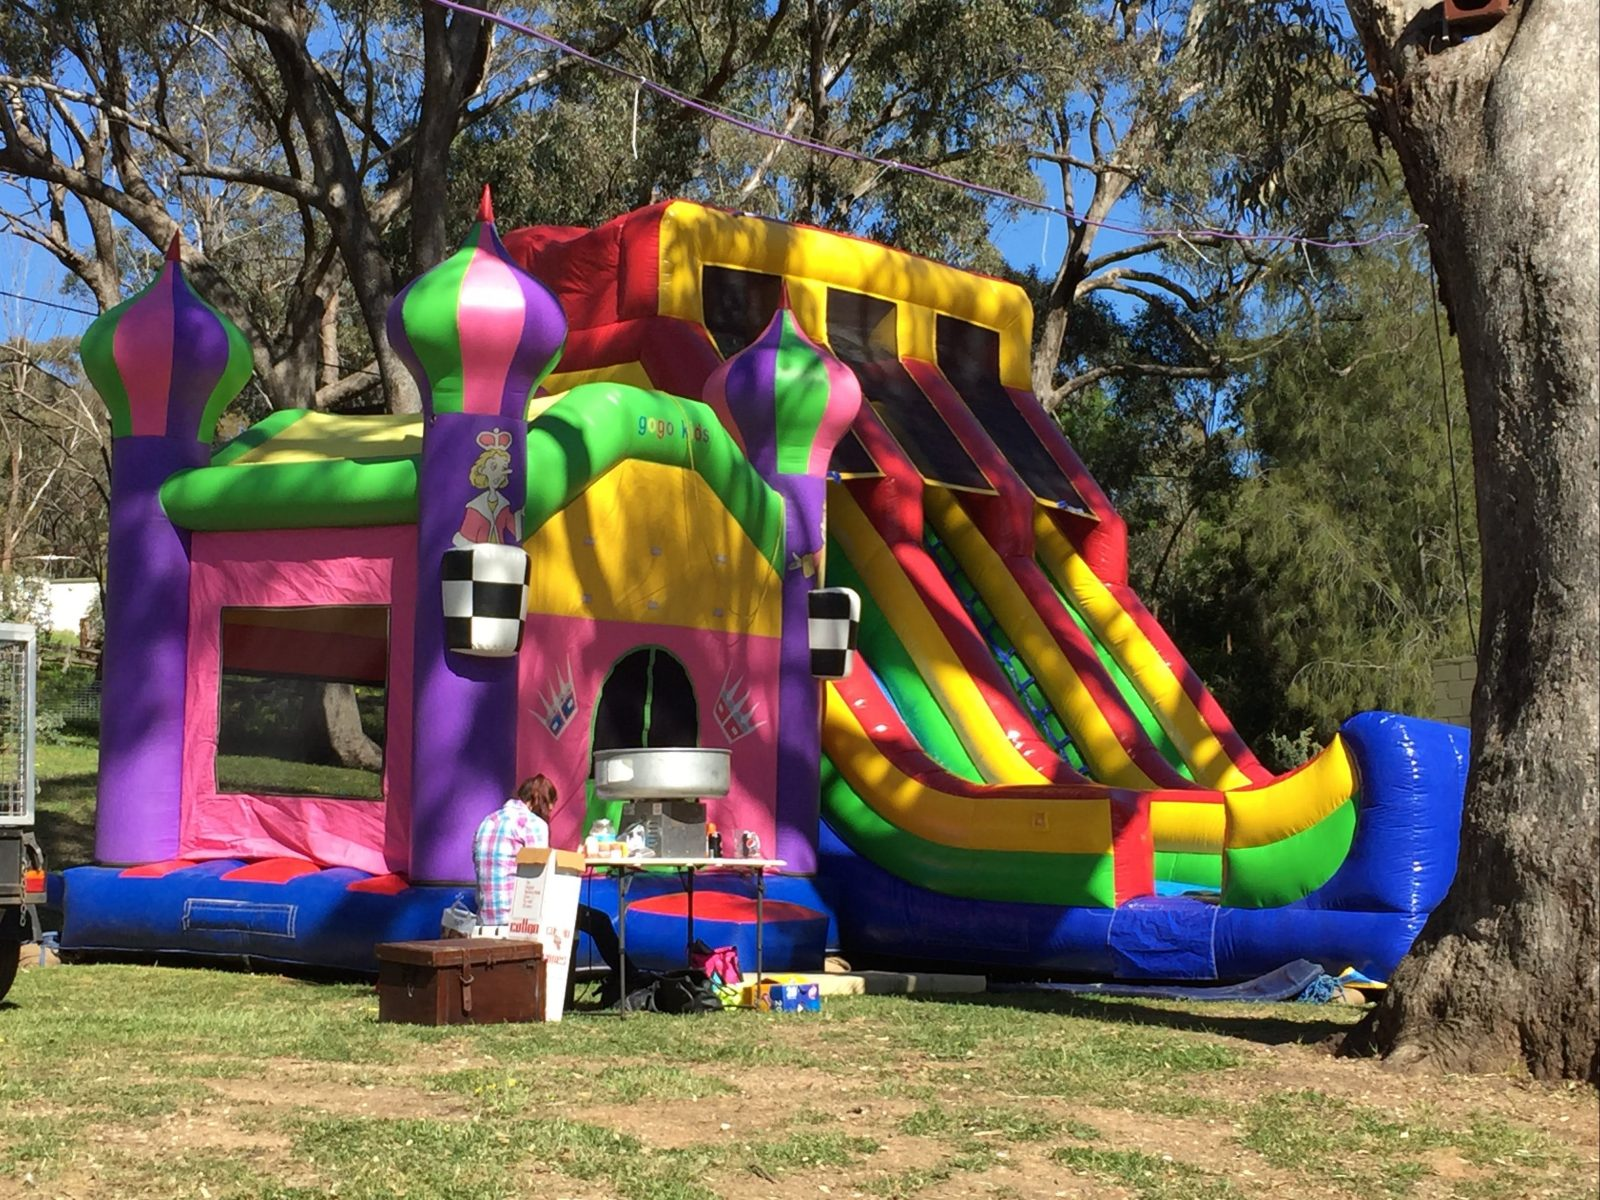 jumping castle, and giant air slide